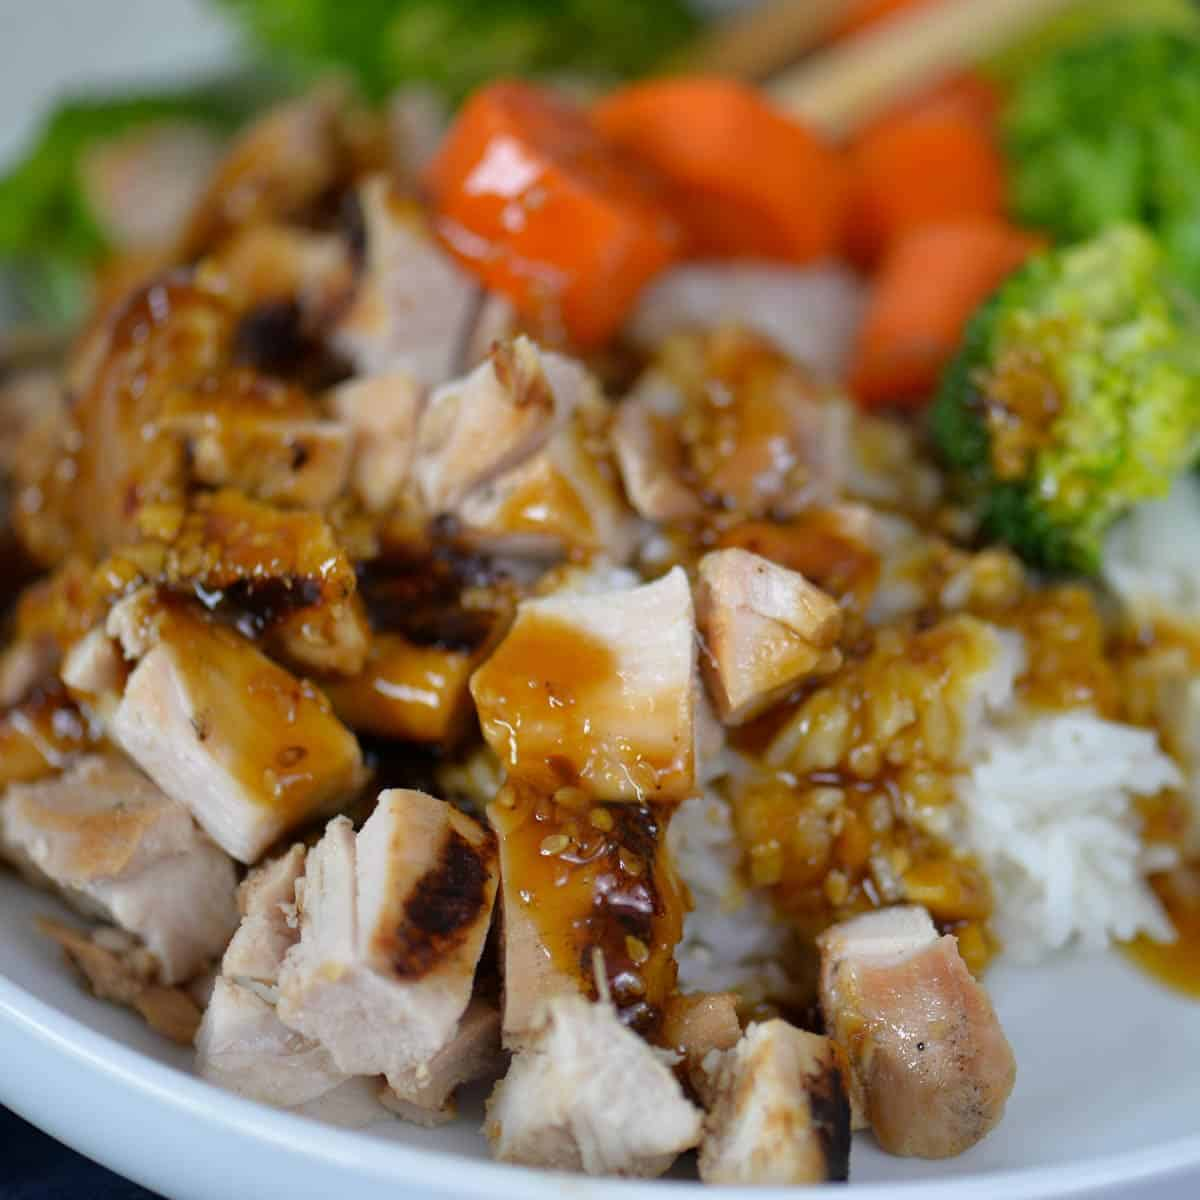 grilled teriyaki chicken bowl with grilled chicken thighs, steamed rice, and veggies